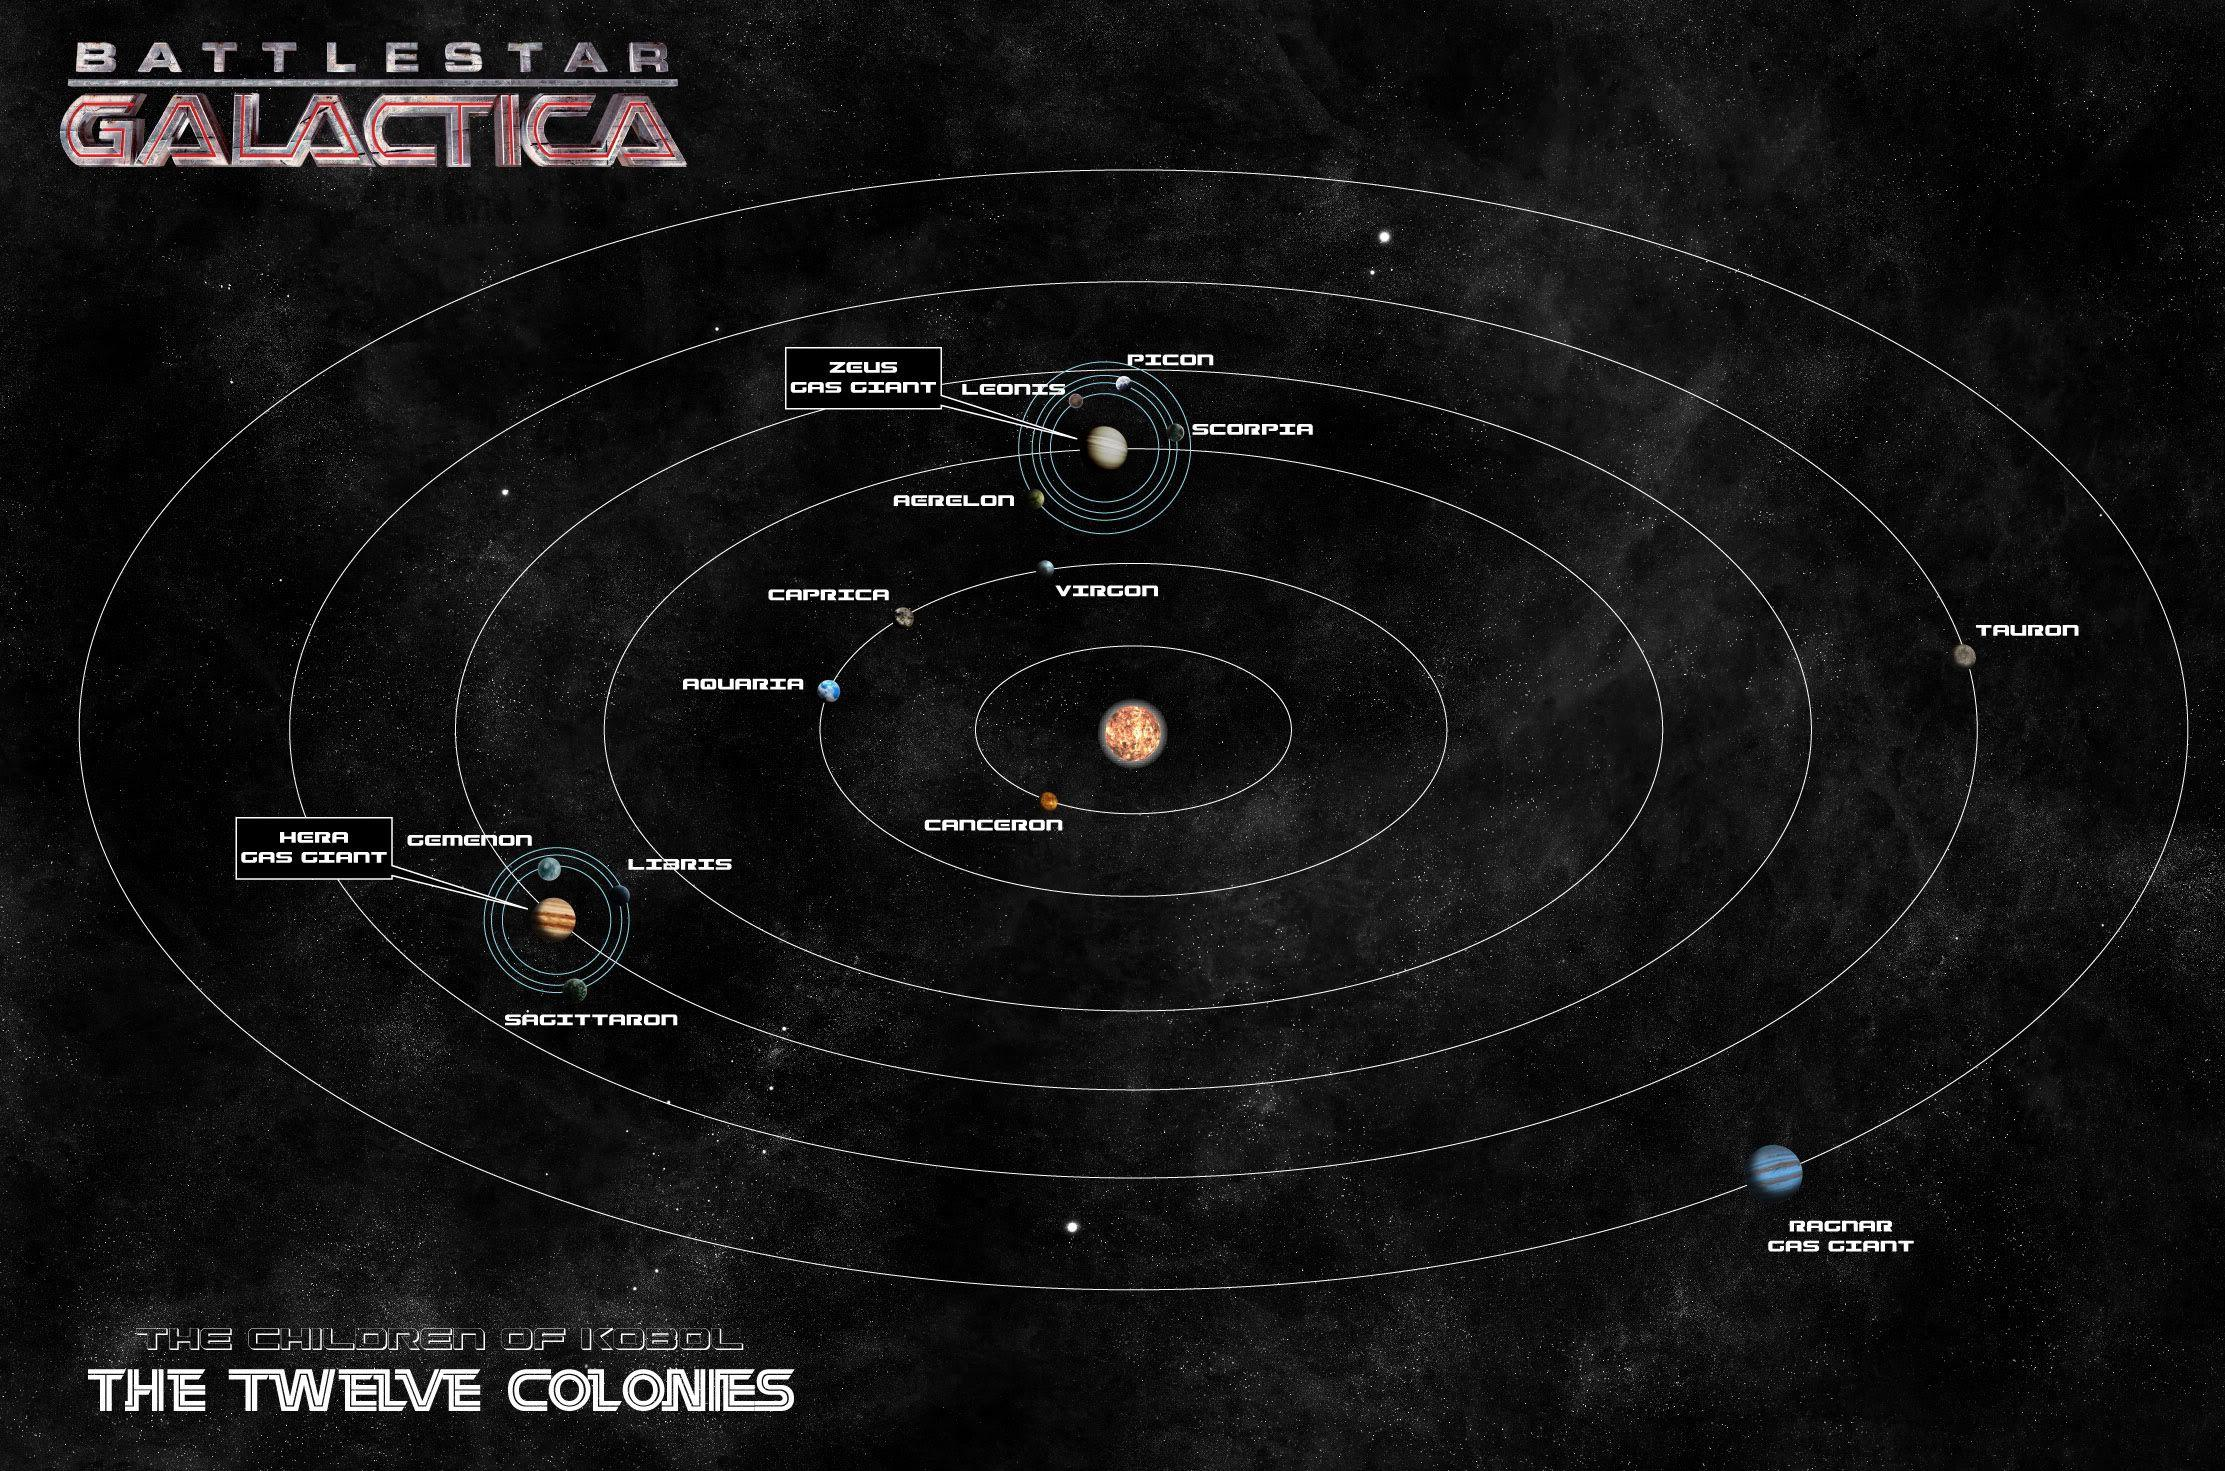 Battlestar Galactica Colonies Map HD Photo Wallpapers